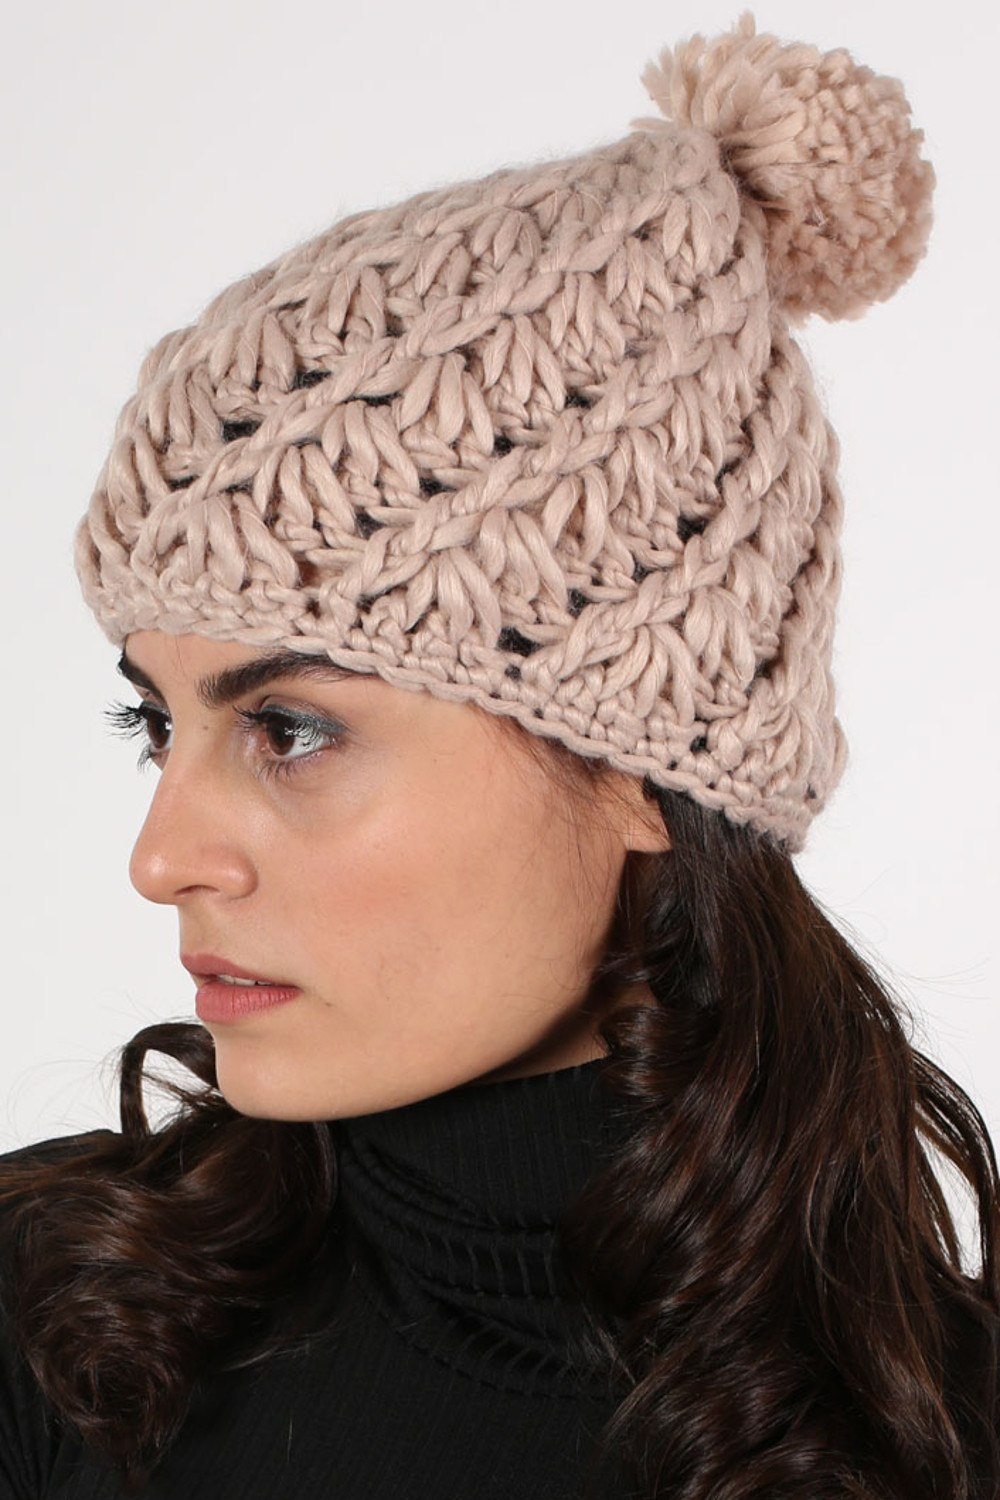 Chunky Knit Pompom Beanie Hat in Pink MODEL SIDE